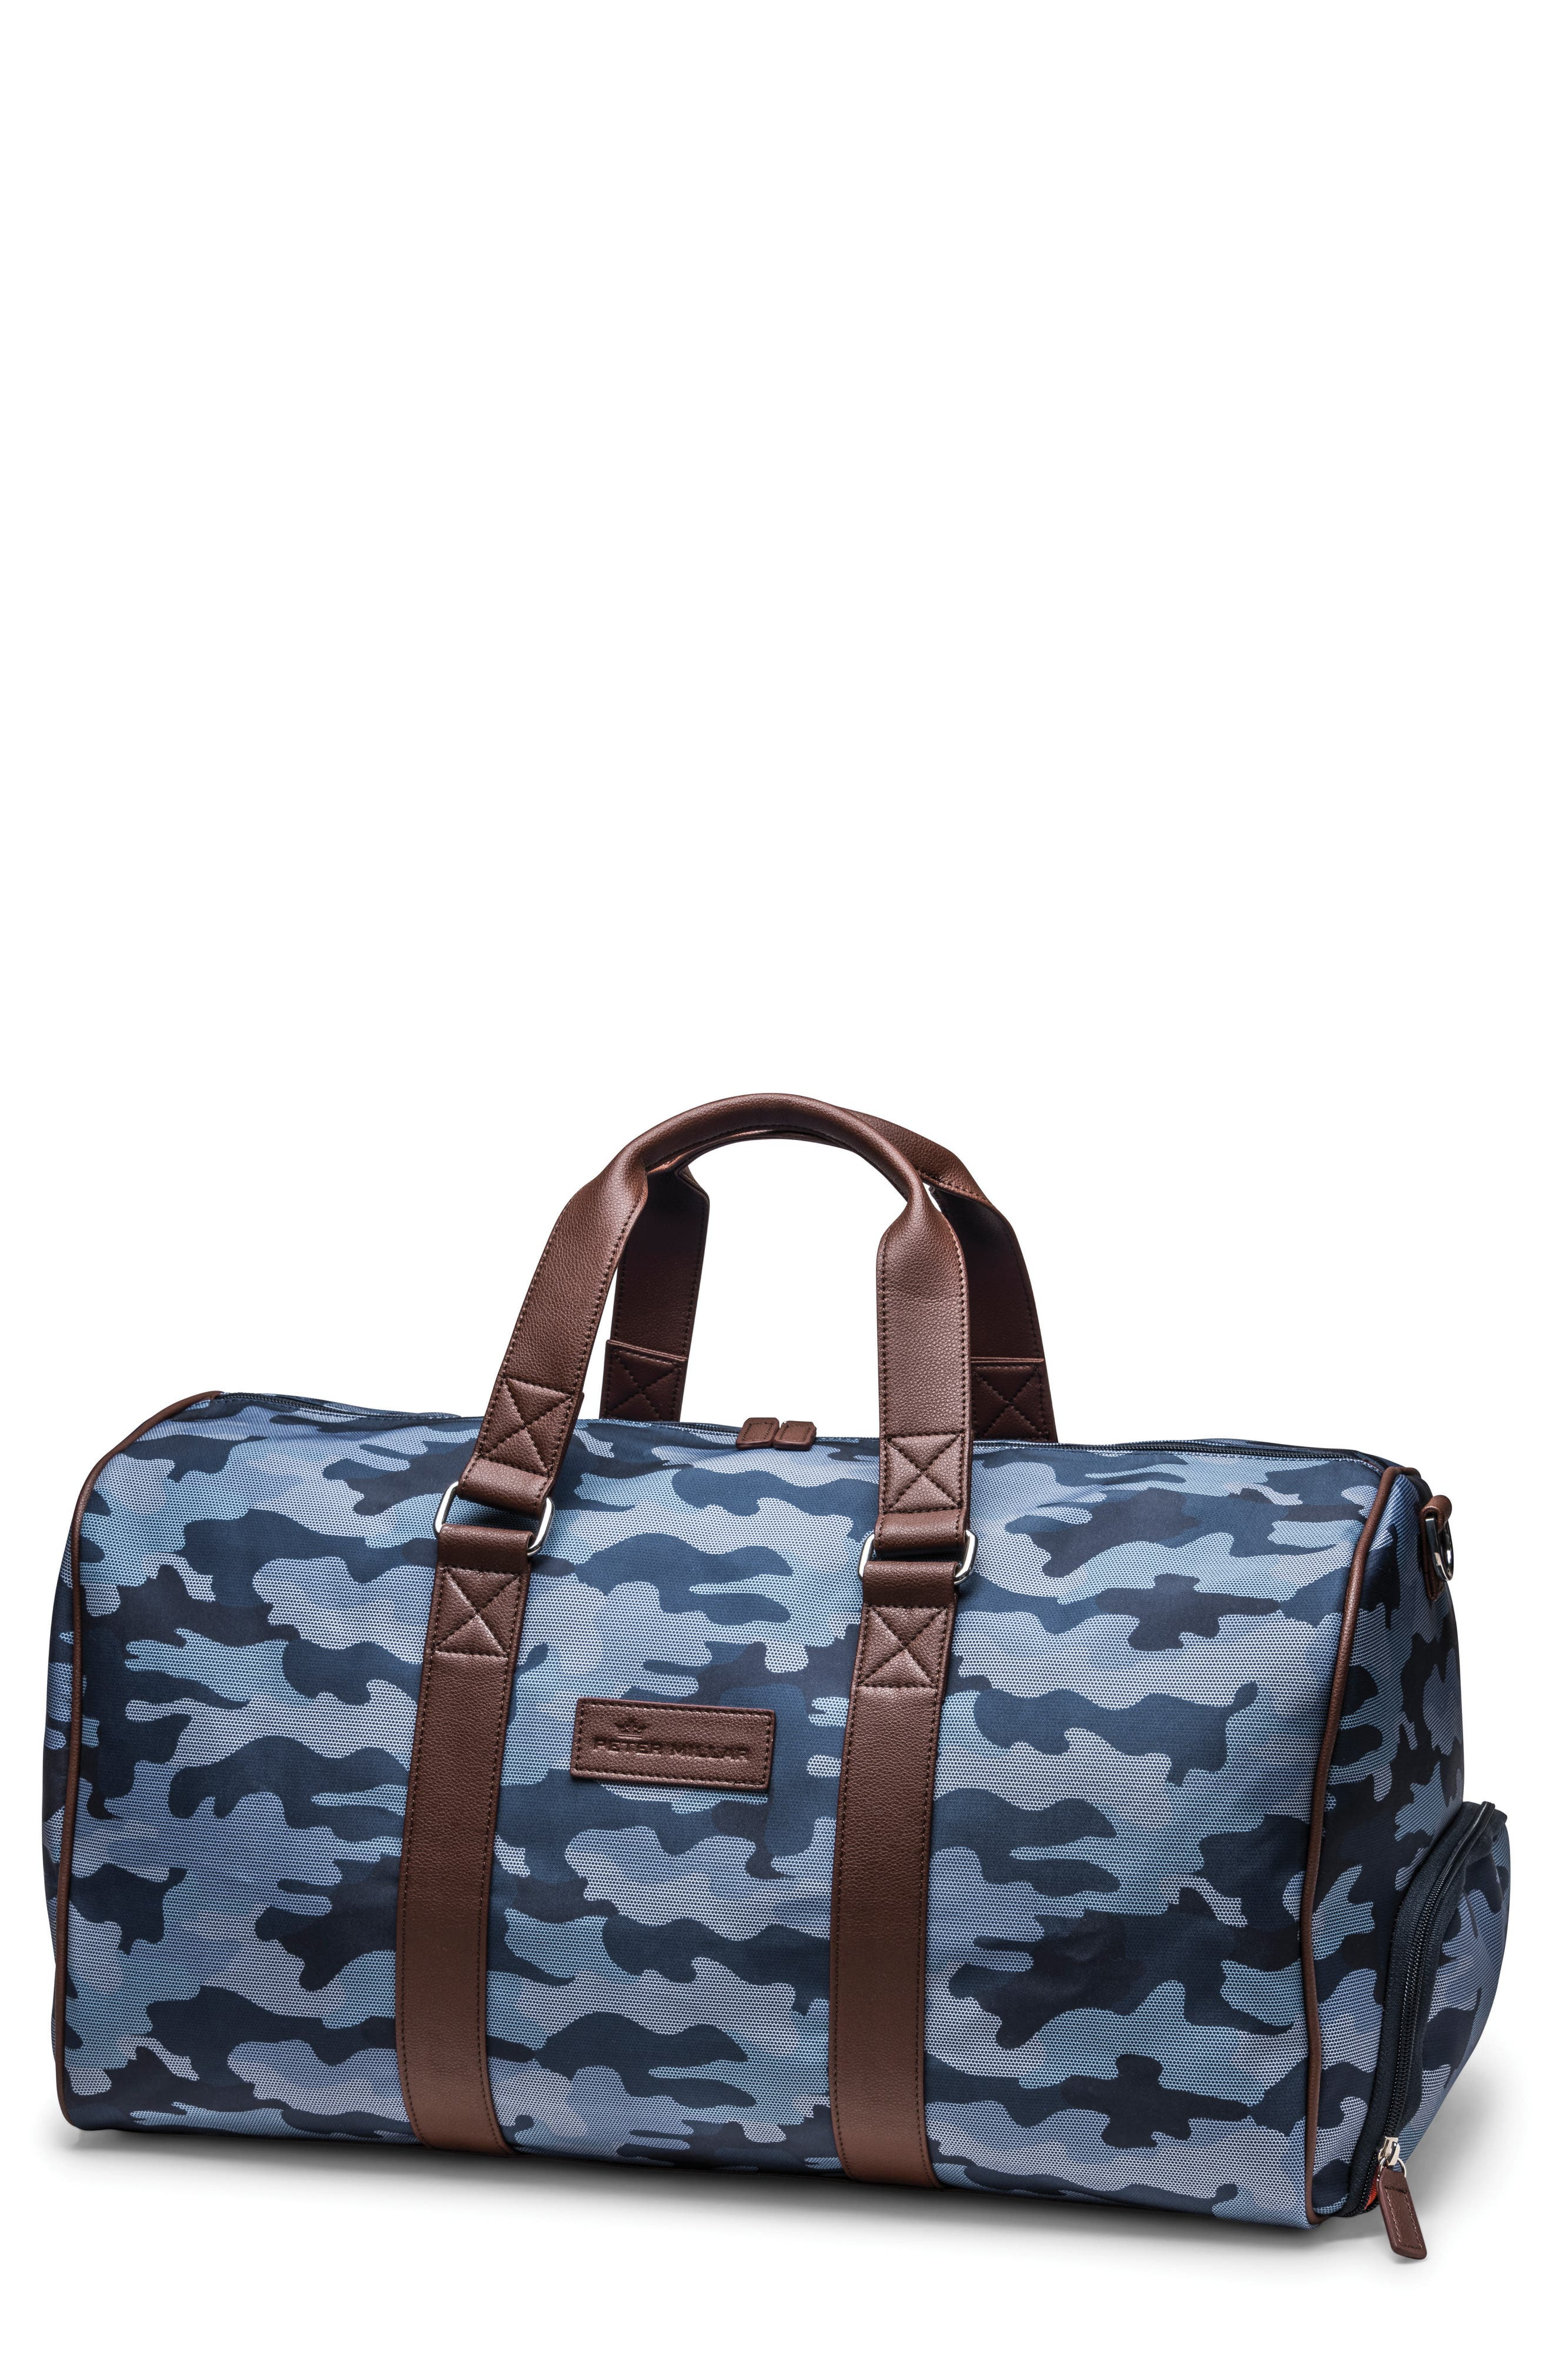 Alternate Image 1 Selected - Peter Millar Camo Duffel Bag